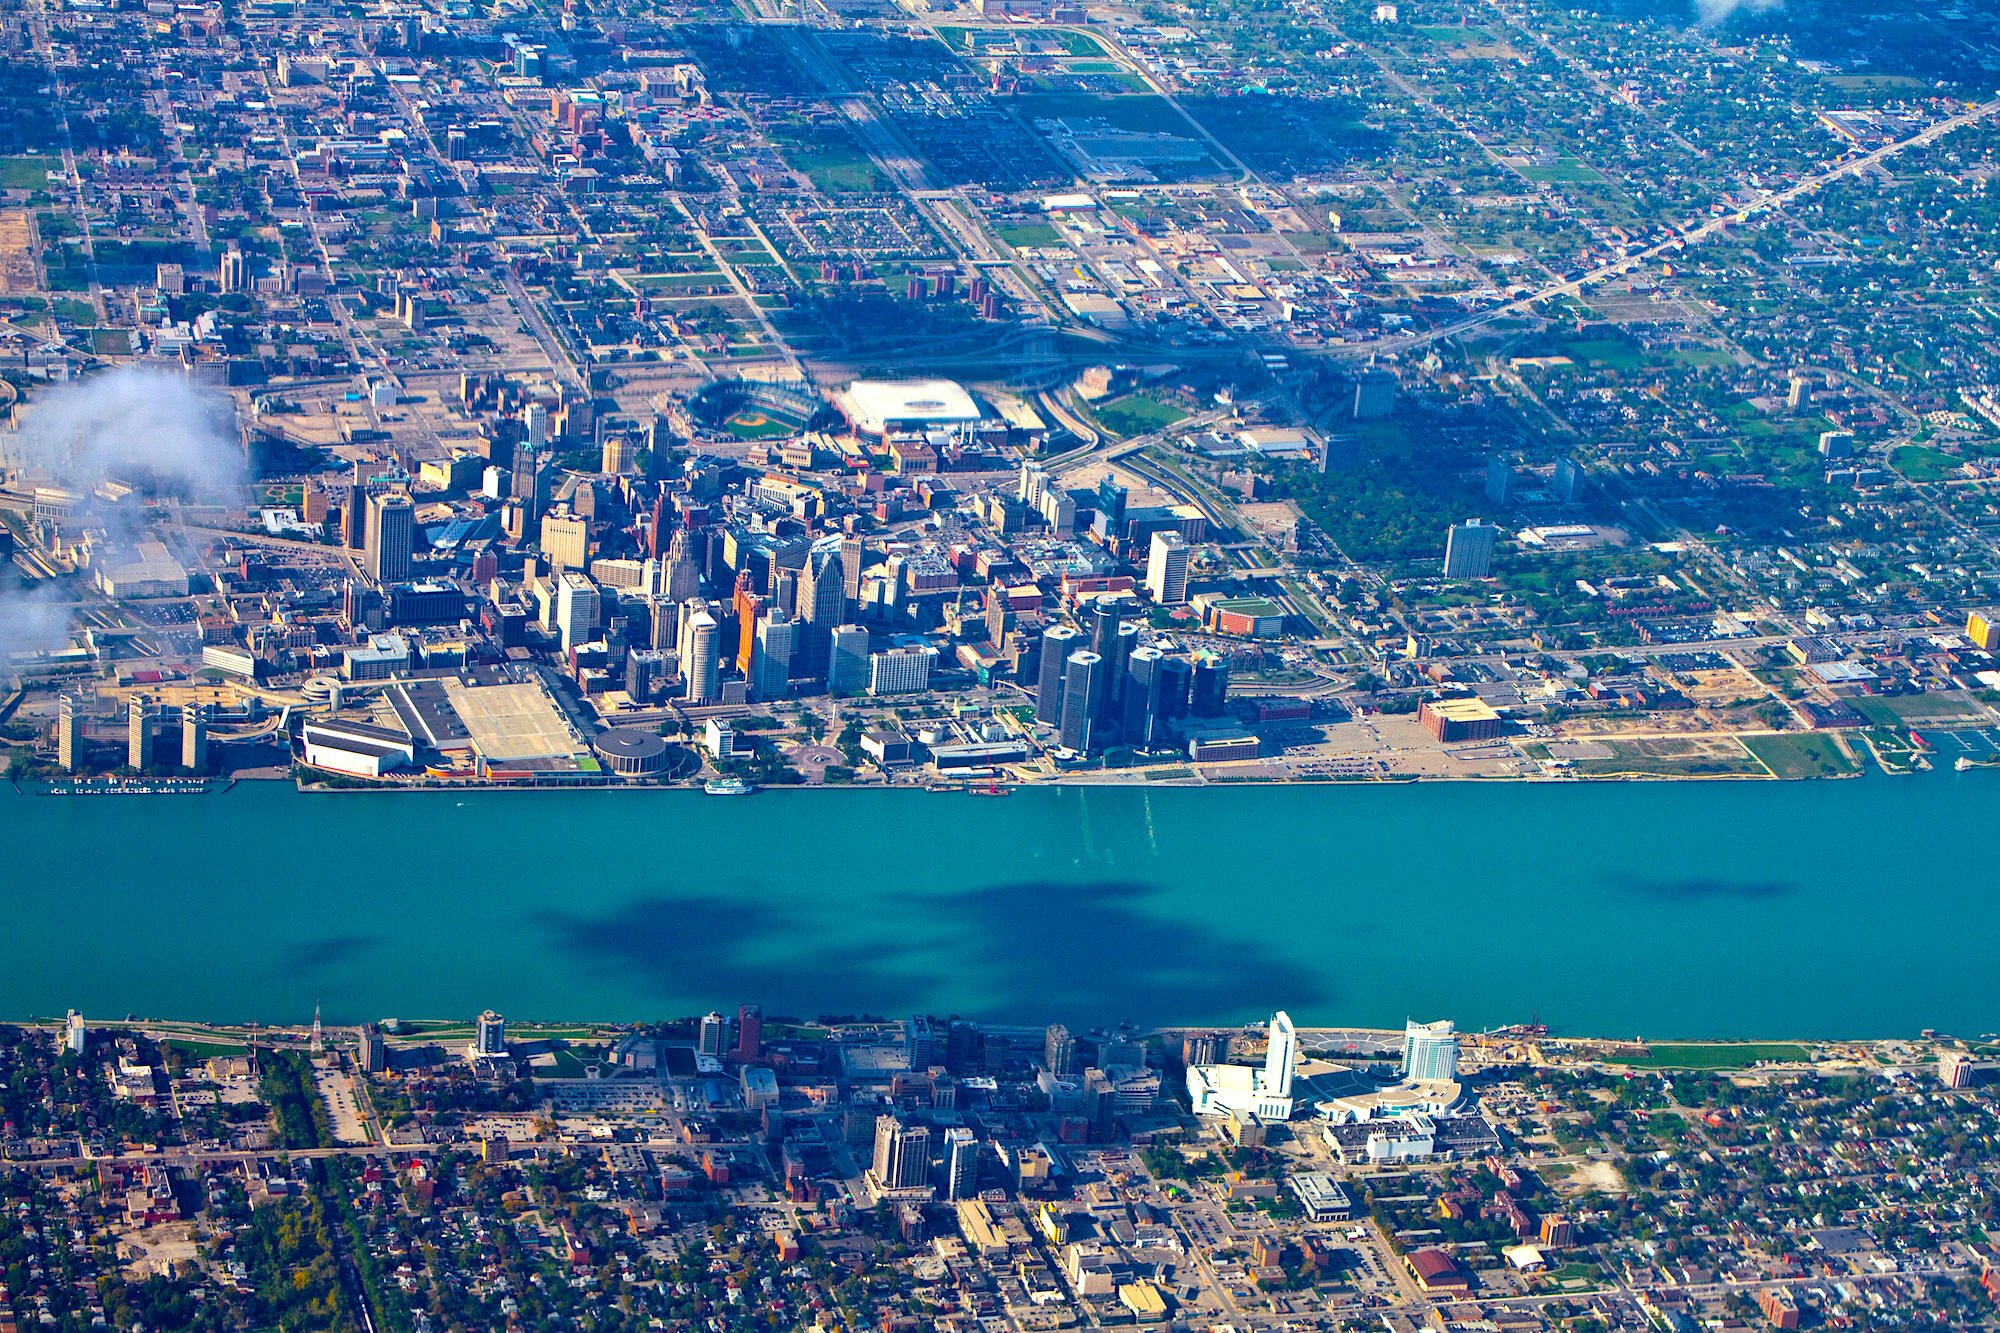 New Great Lakes climate change report suggests green infrastructure could help address equity issues - Concentrate